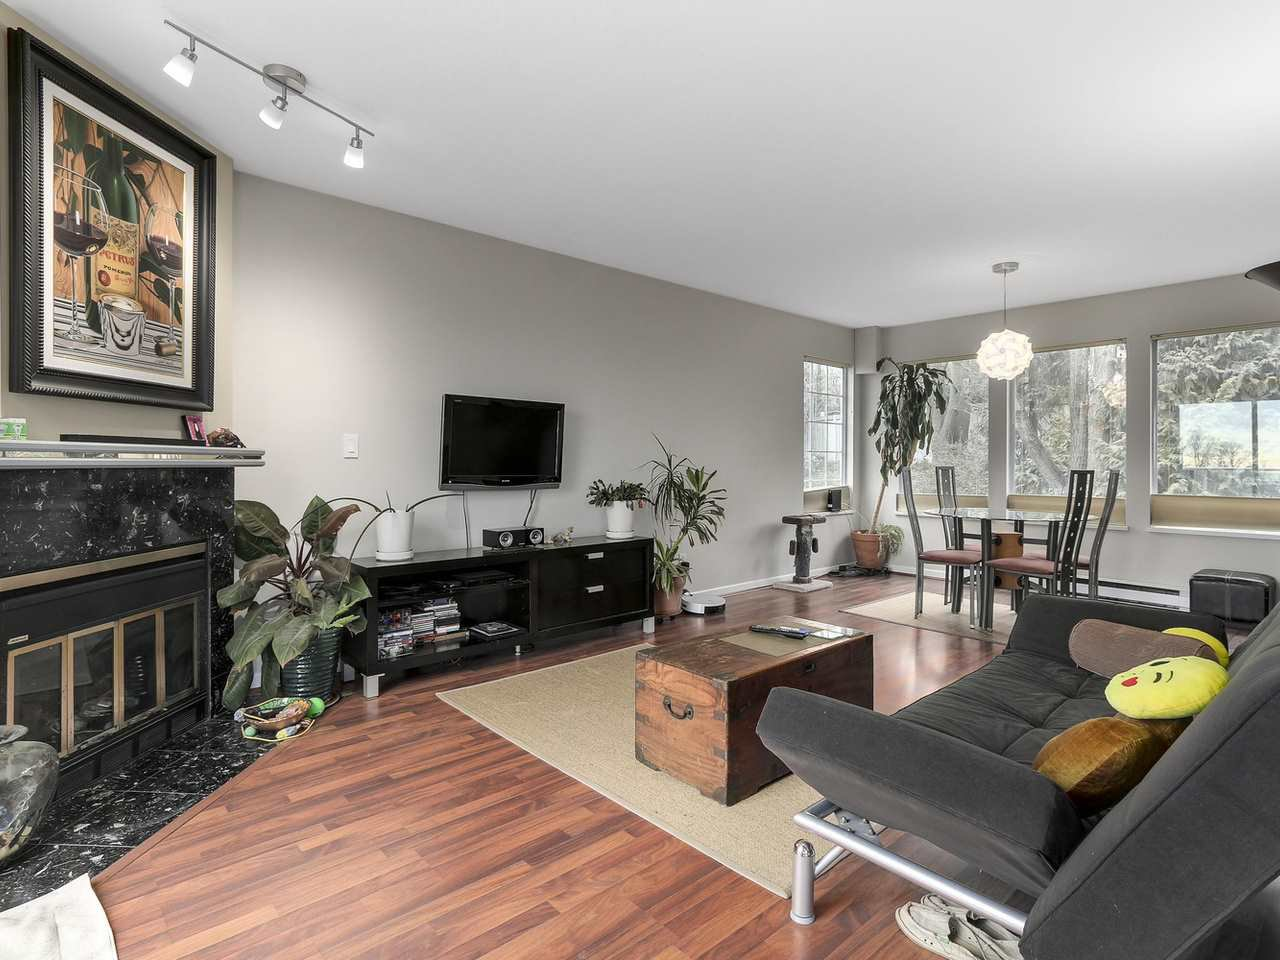 Photo 4: Photos: 2345 QUAYSIDE COURT in Vancouver: Fraserview VE Townhouse for sale (Vancouver East)  : MLS®# R2154138